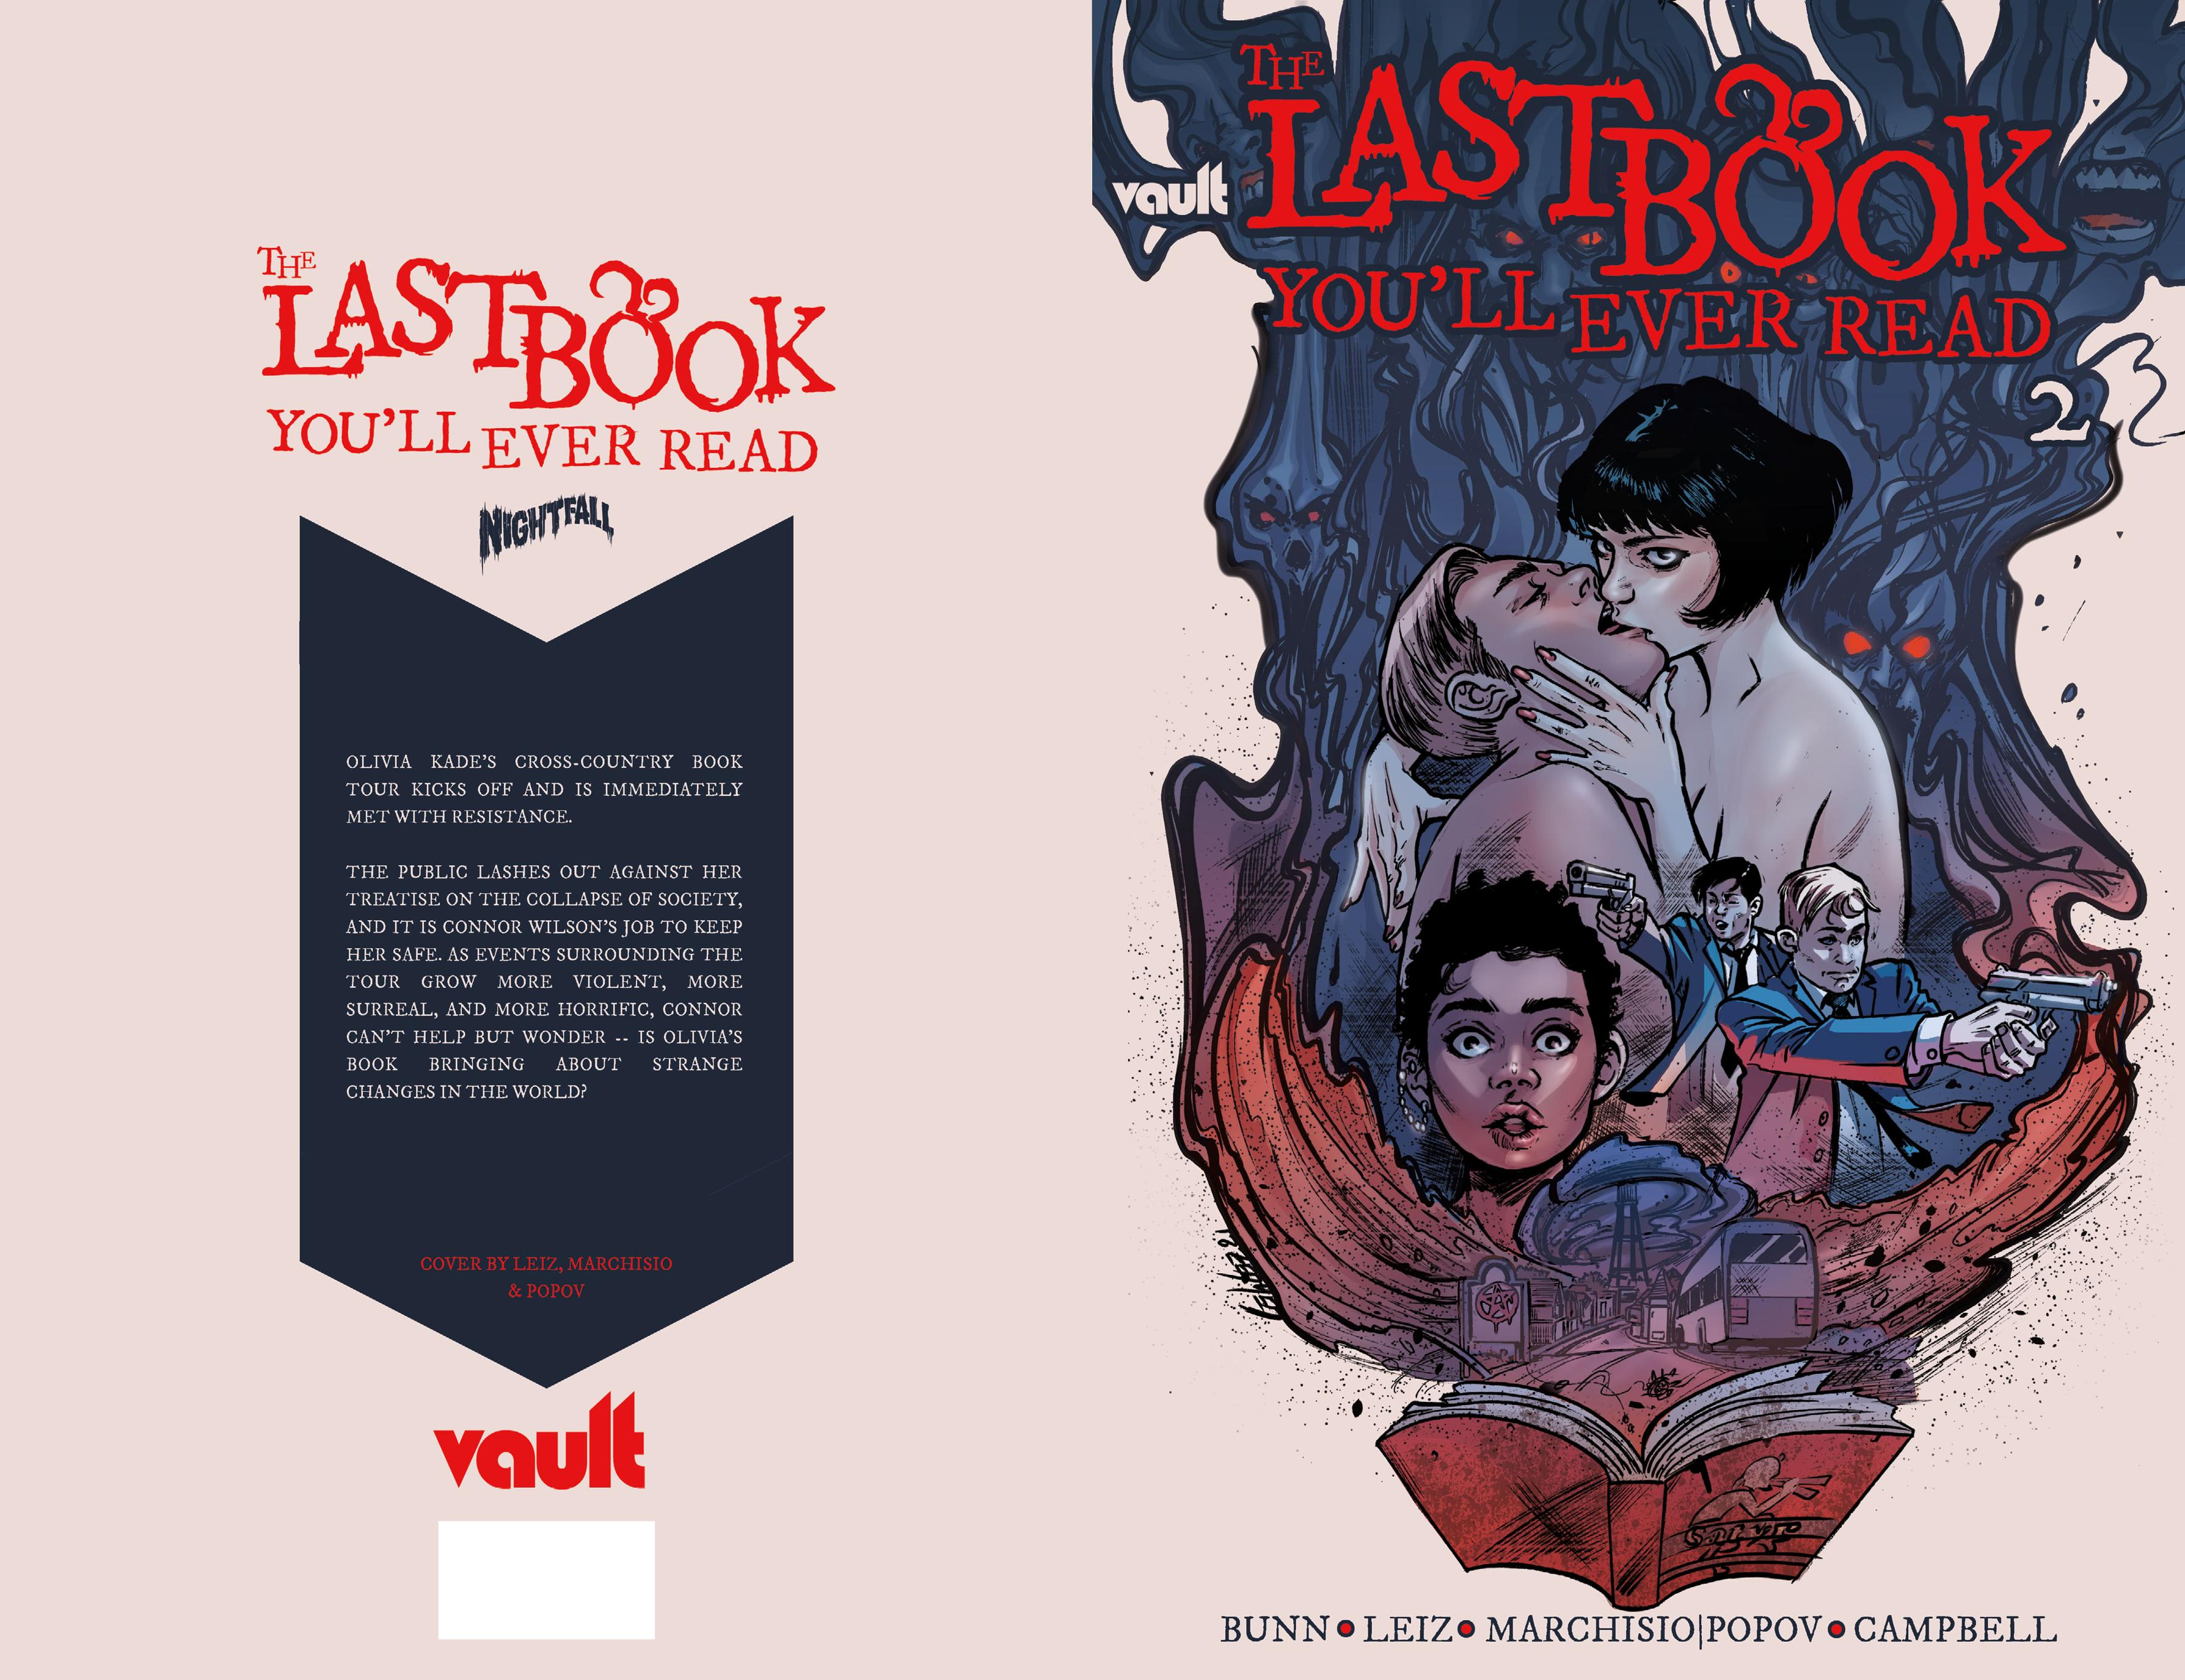 Last Book Youll Ever Read 002 (2021) (digital) (Son of Ultron-Empire)